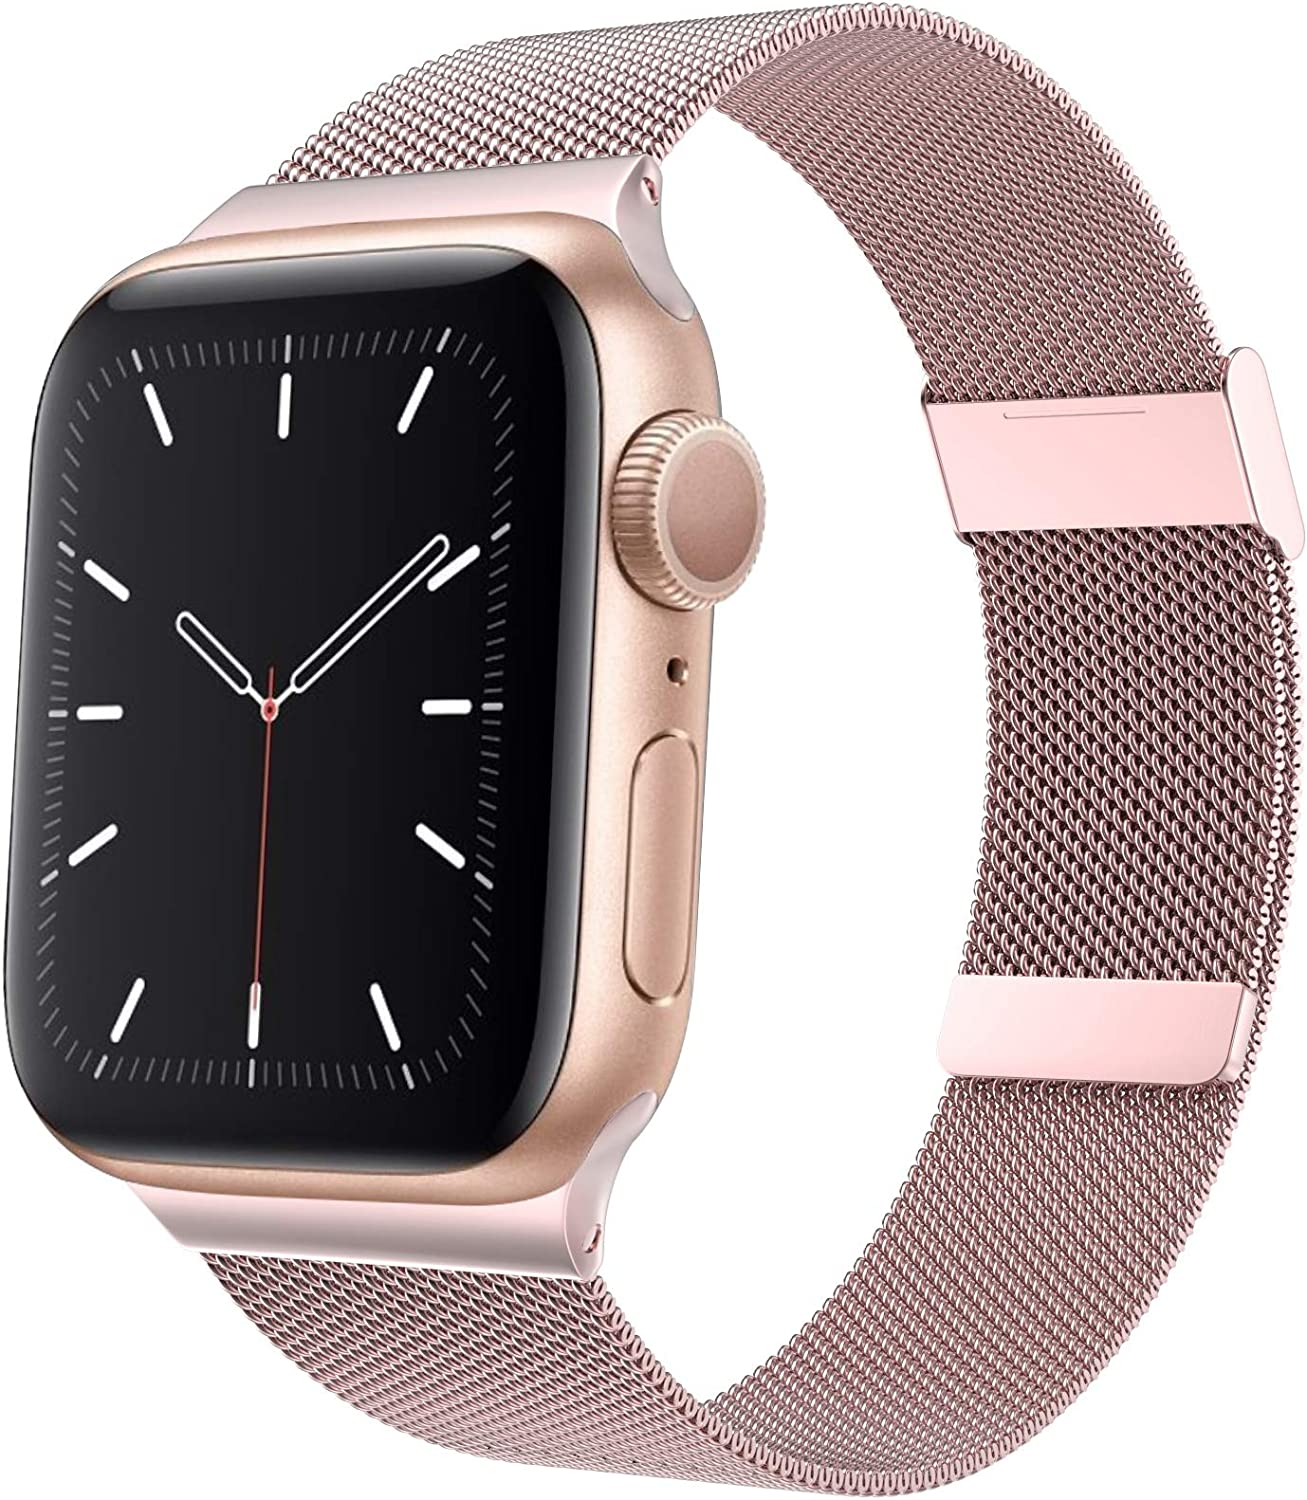 Aoute Compatible with Apple Watch Bands 38mm 40mm 42mm 44mm Women Men, Stainless Steel iWatch Bands for Series 6/SE/5/4/3/2/1